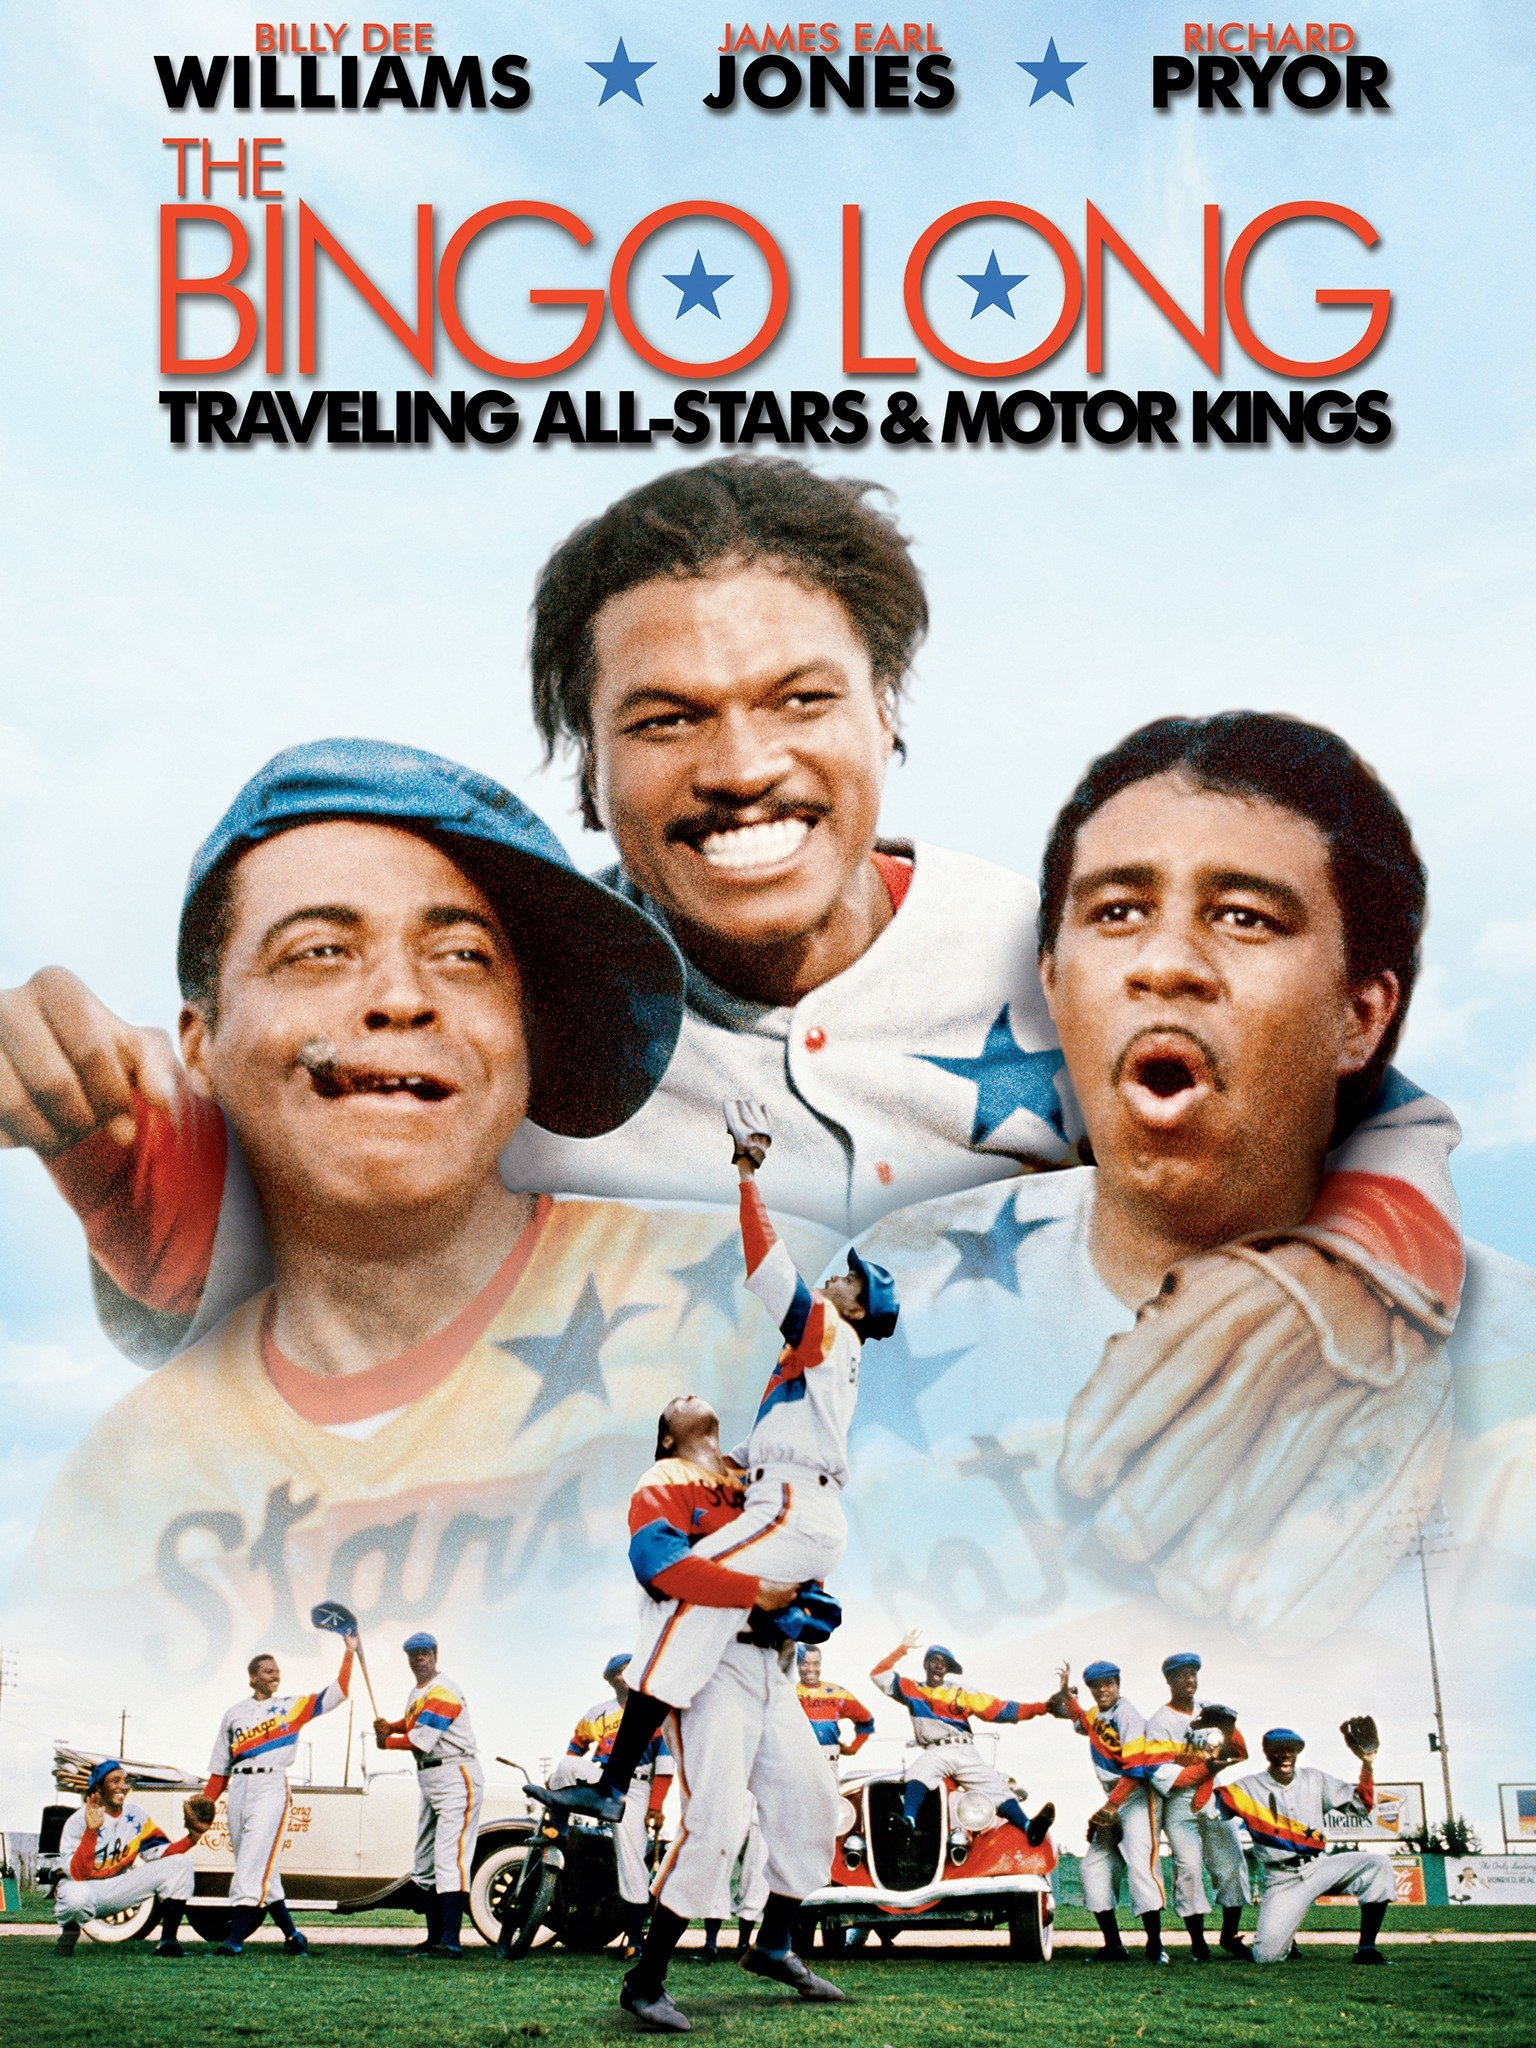 The Bingo Long Traveling All-Stars & Motor Kings